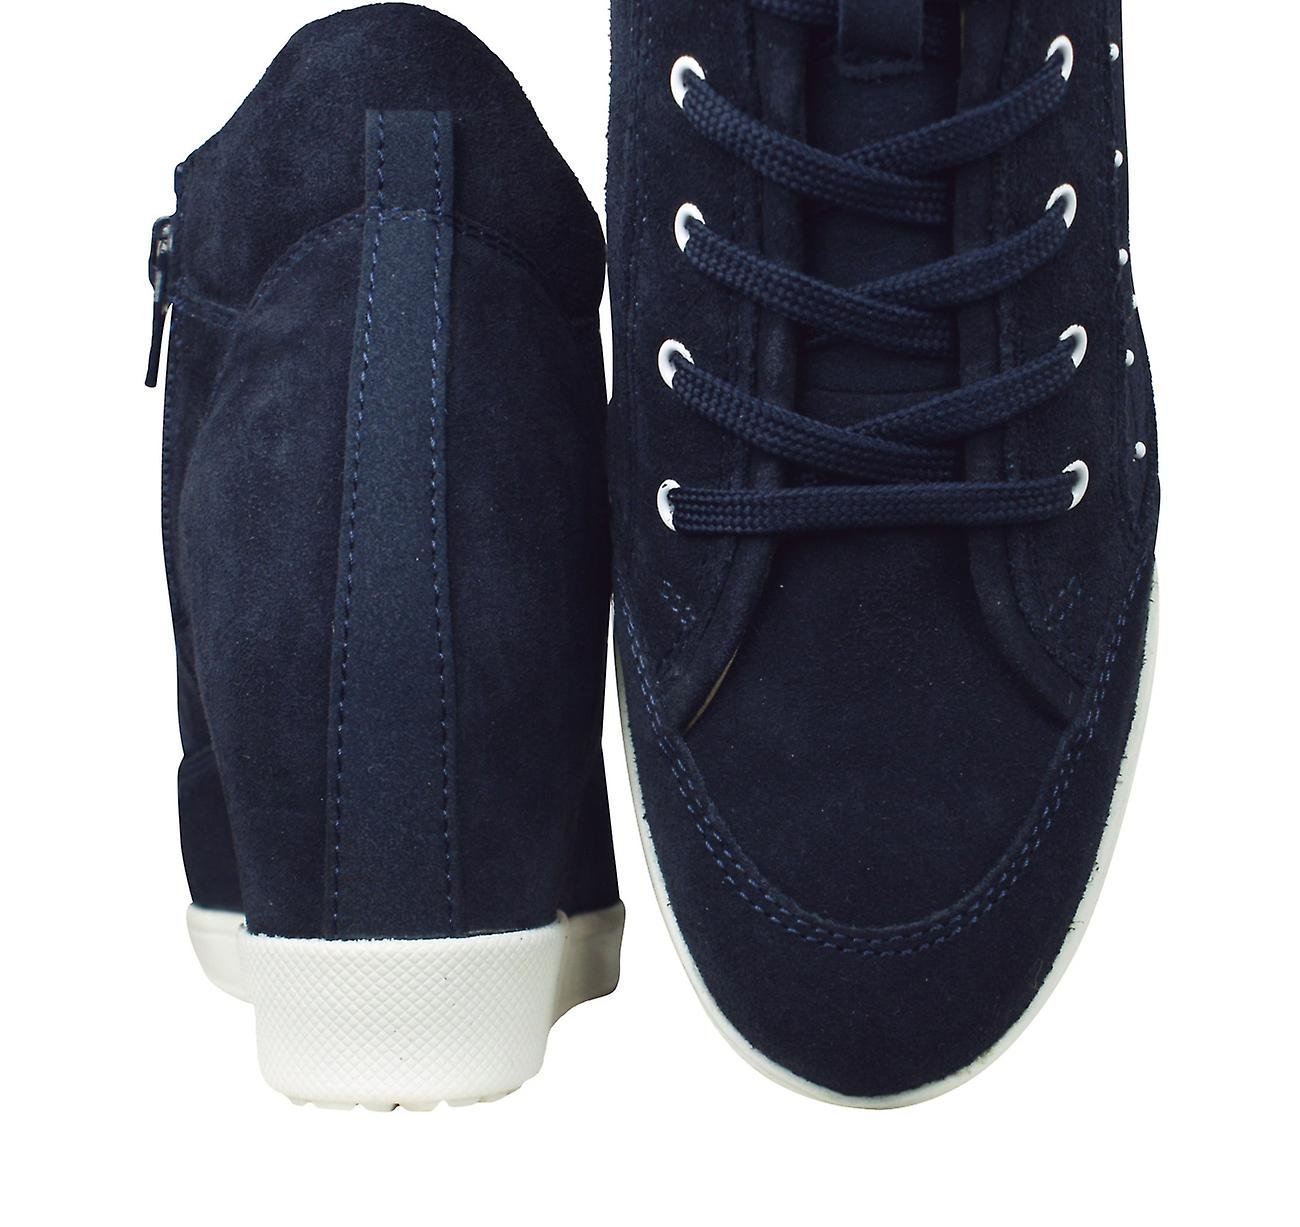 Geox D Carum C Womens Suede Leather Wedge Trainers / Boots - Navy